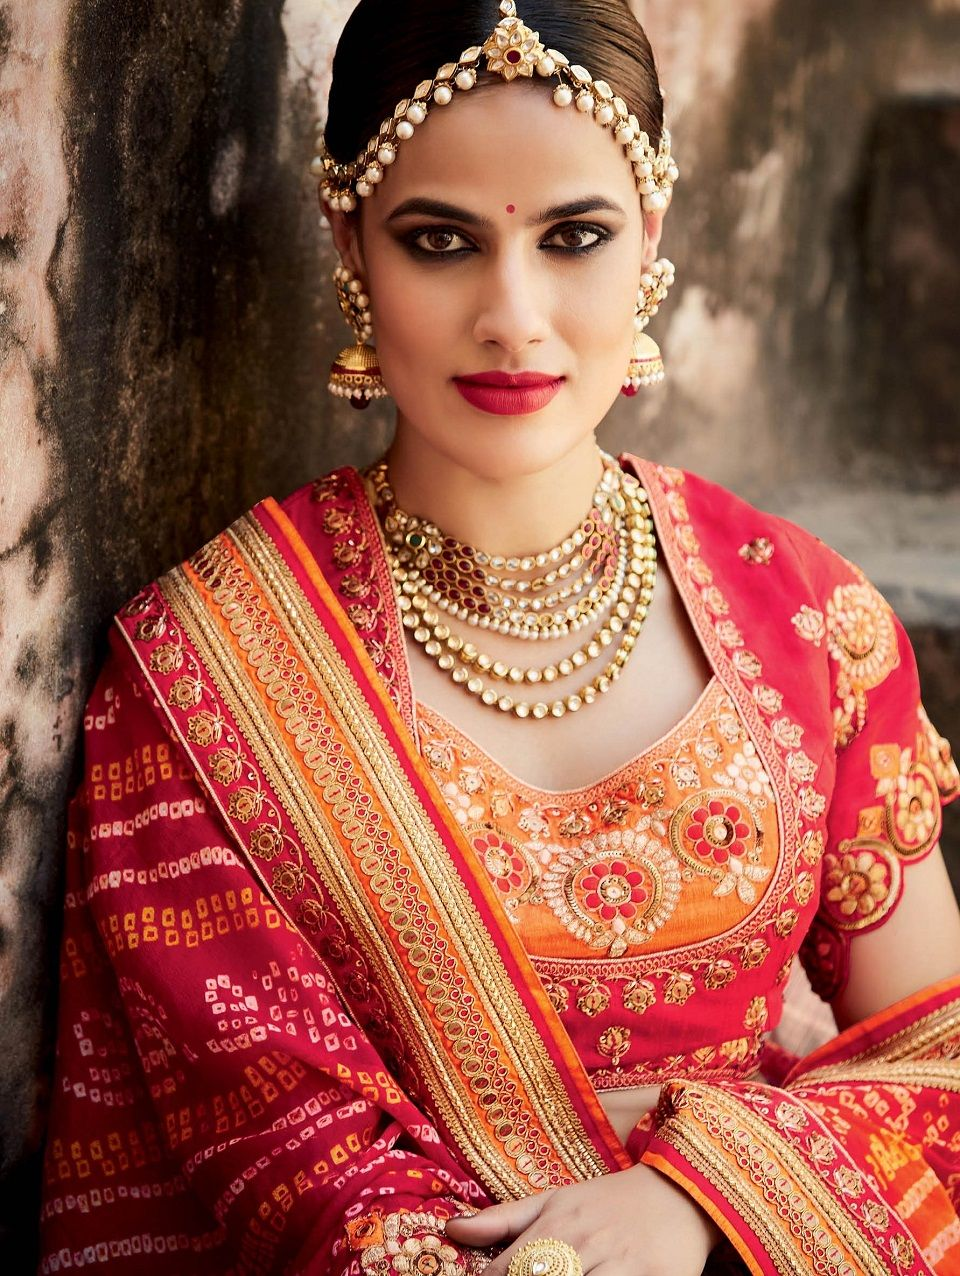 Wedding saree blouse design red indian wedding saree latest designs u trends  collection